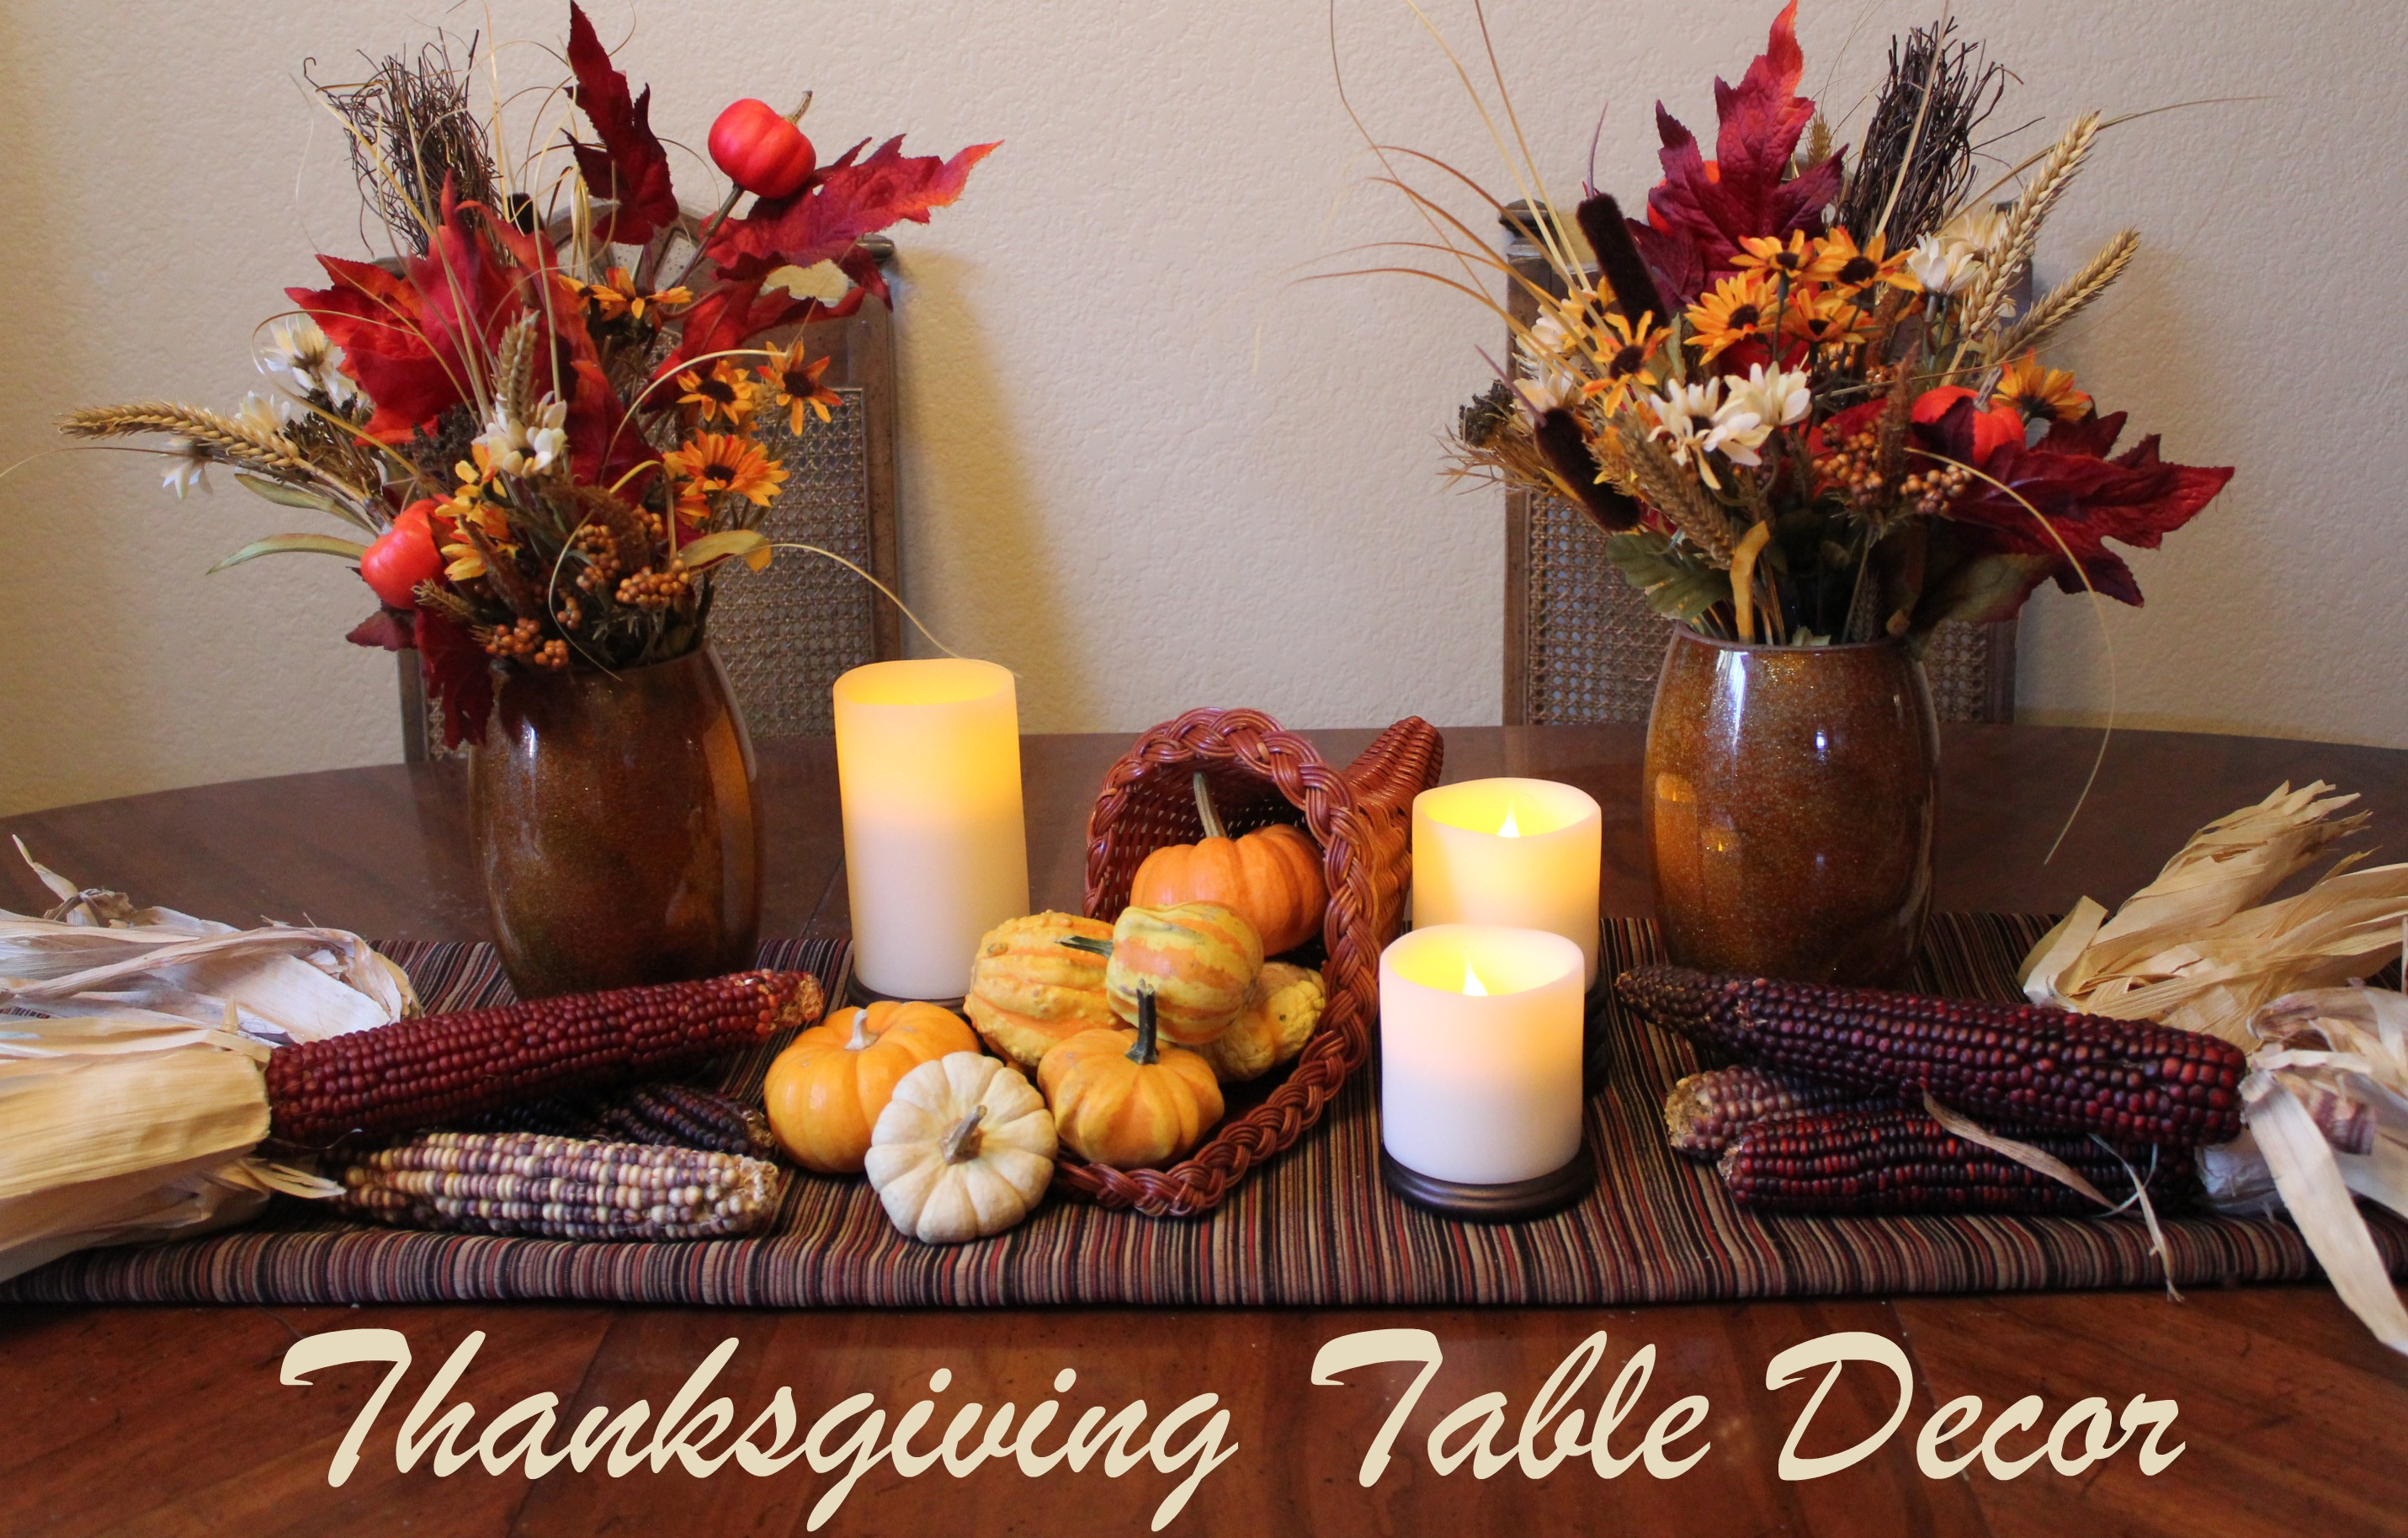 Cornucopia of Creativity: DIY Thanksgiving Table Decor